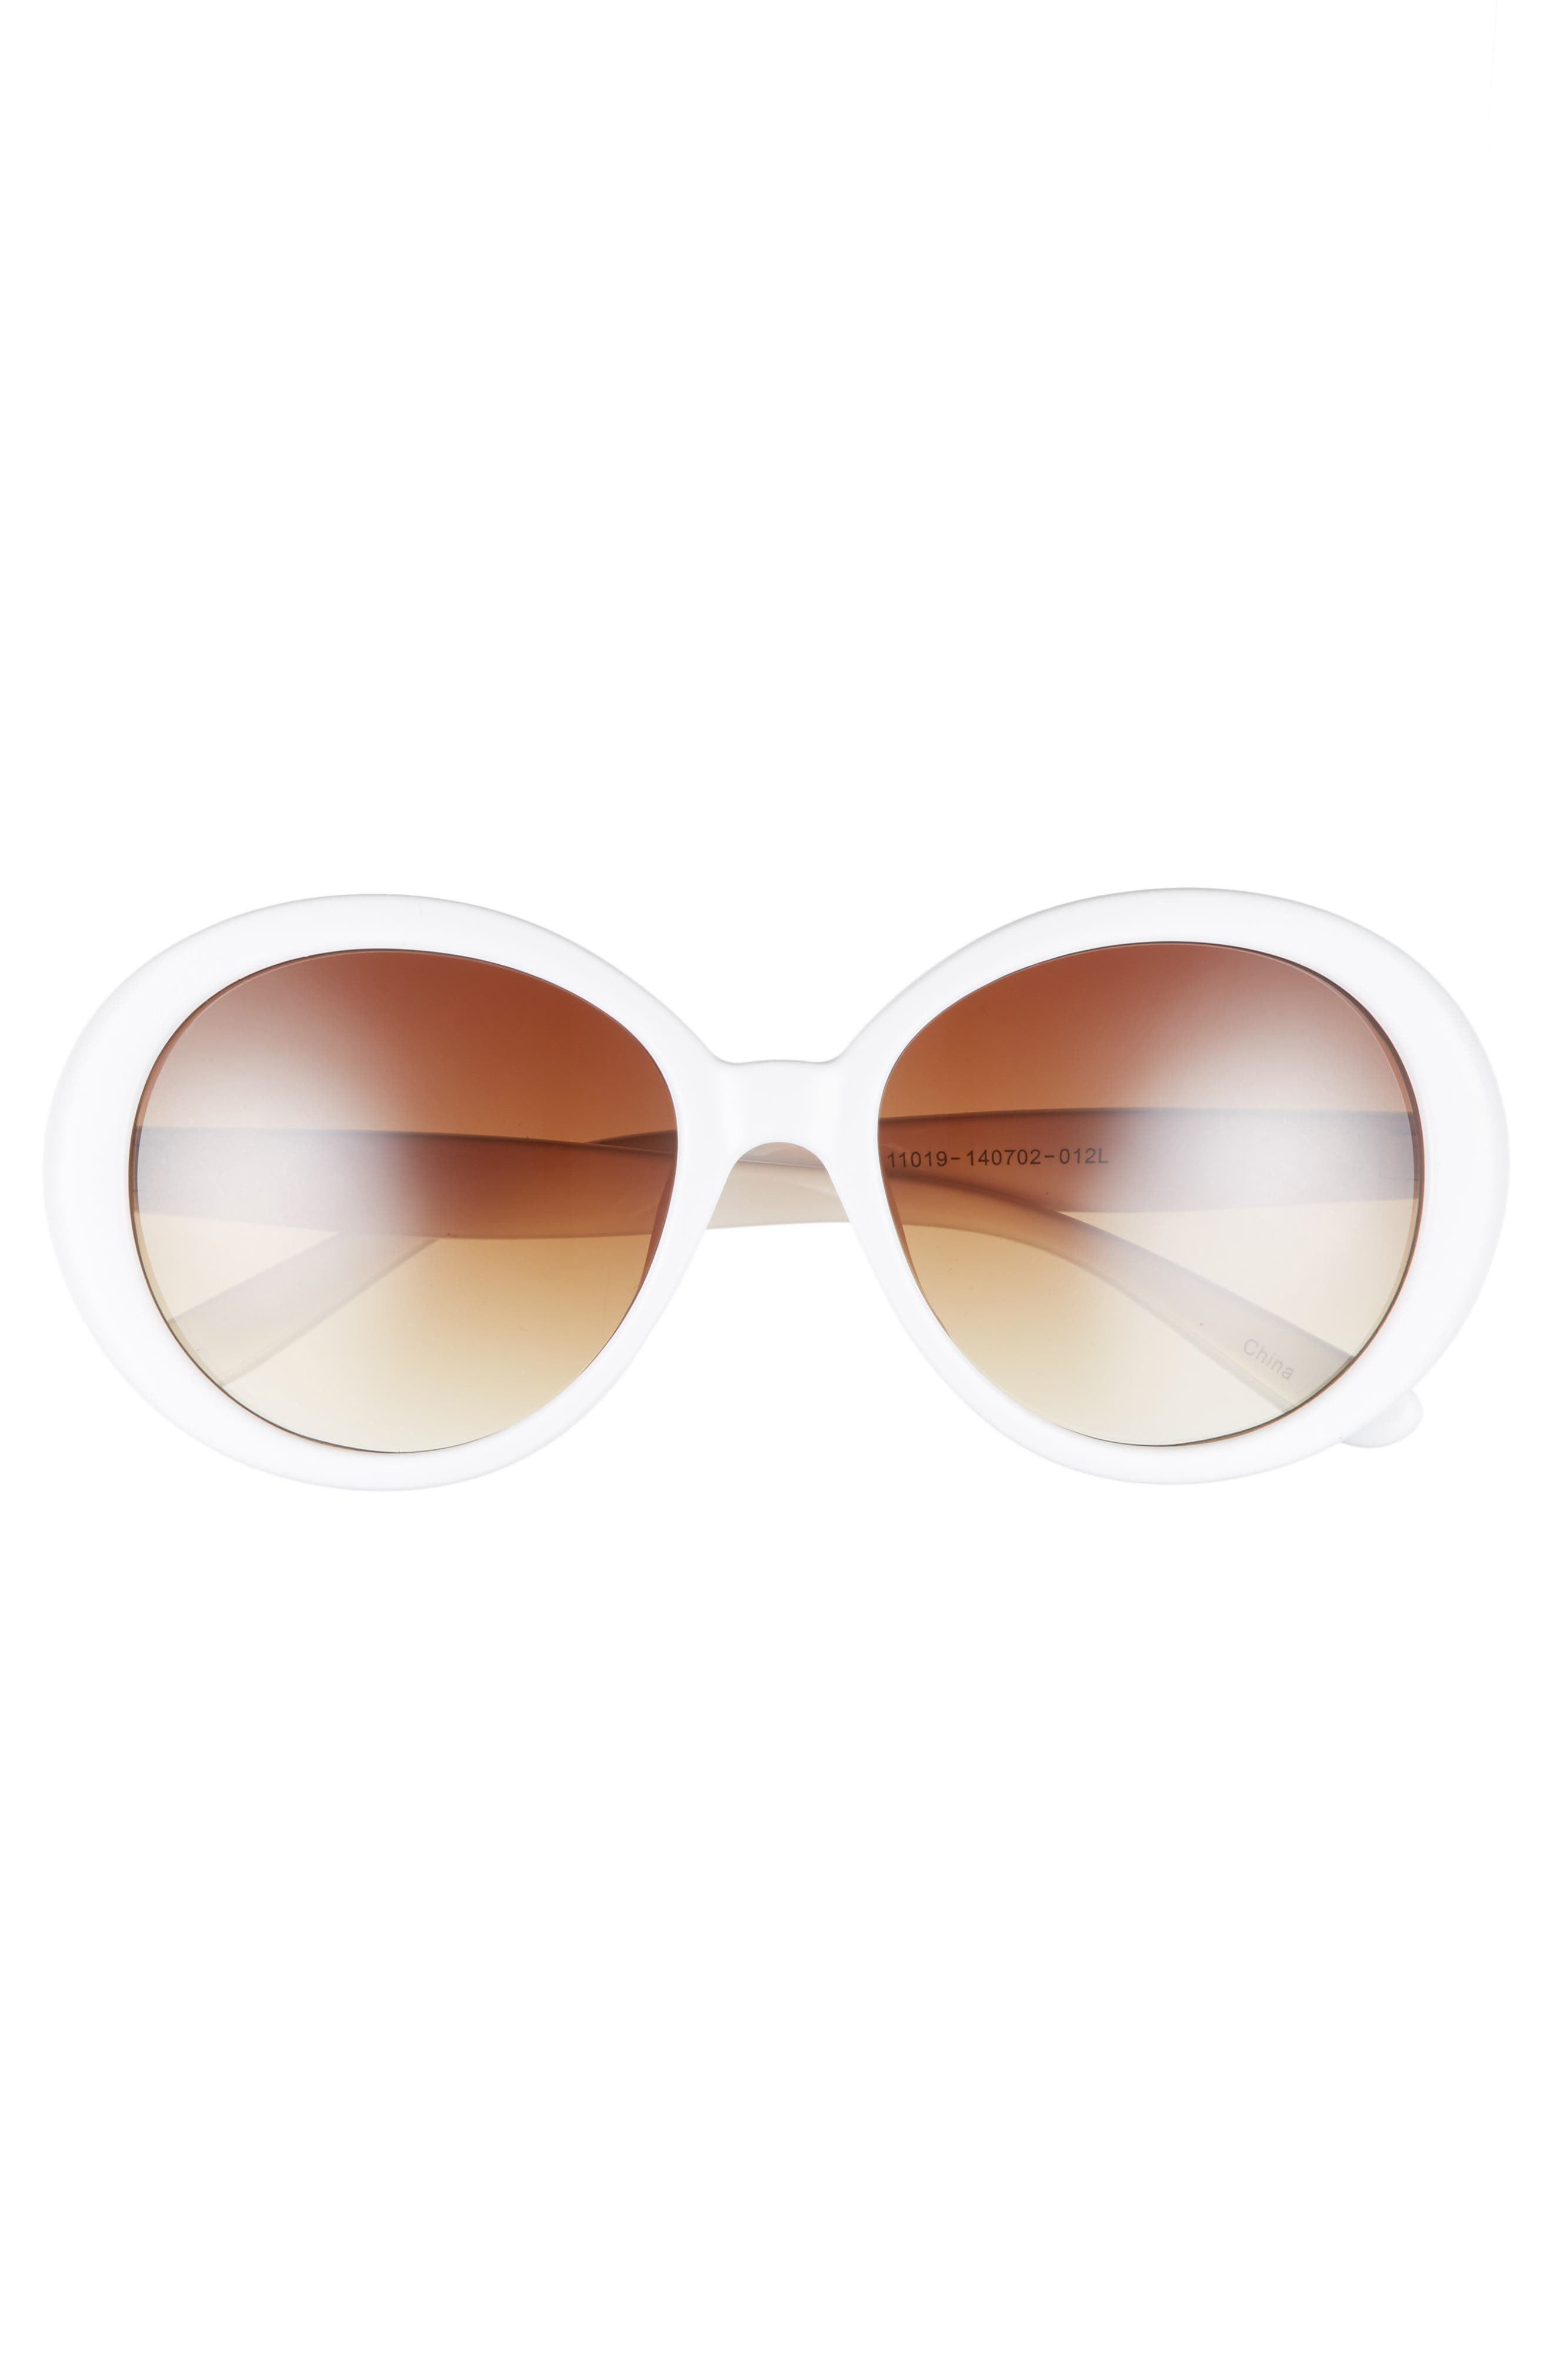 55mm Oval Sunglasses,                             Alternate thumbnail 3, color,                             100